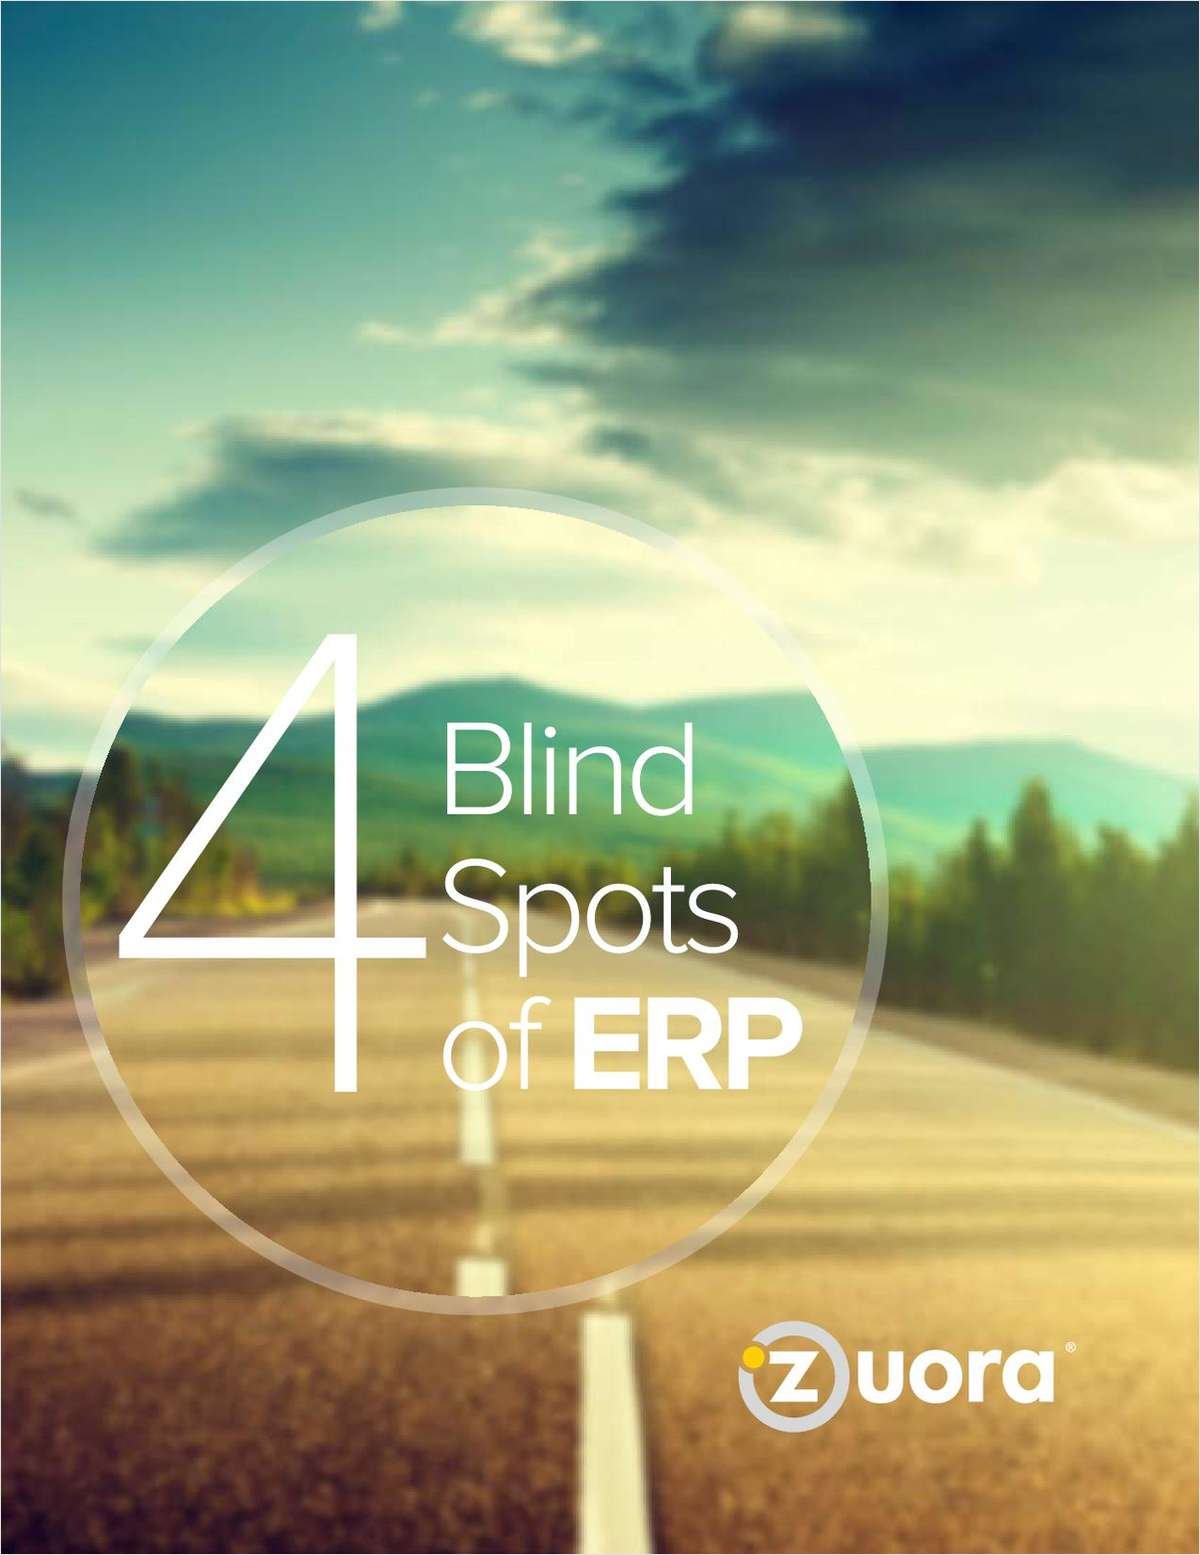 The 4 Blind Spots of ERP